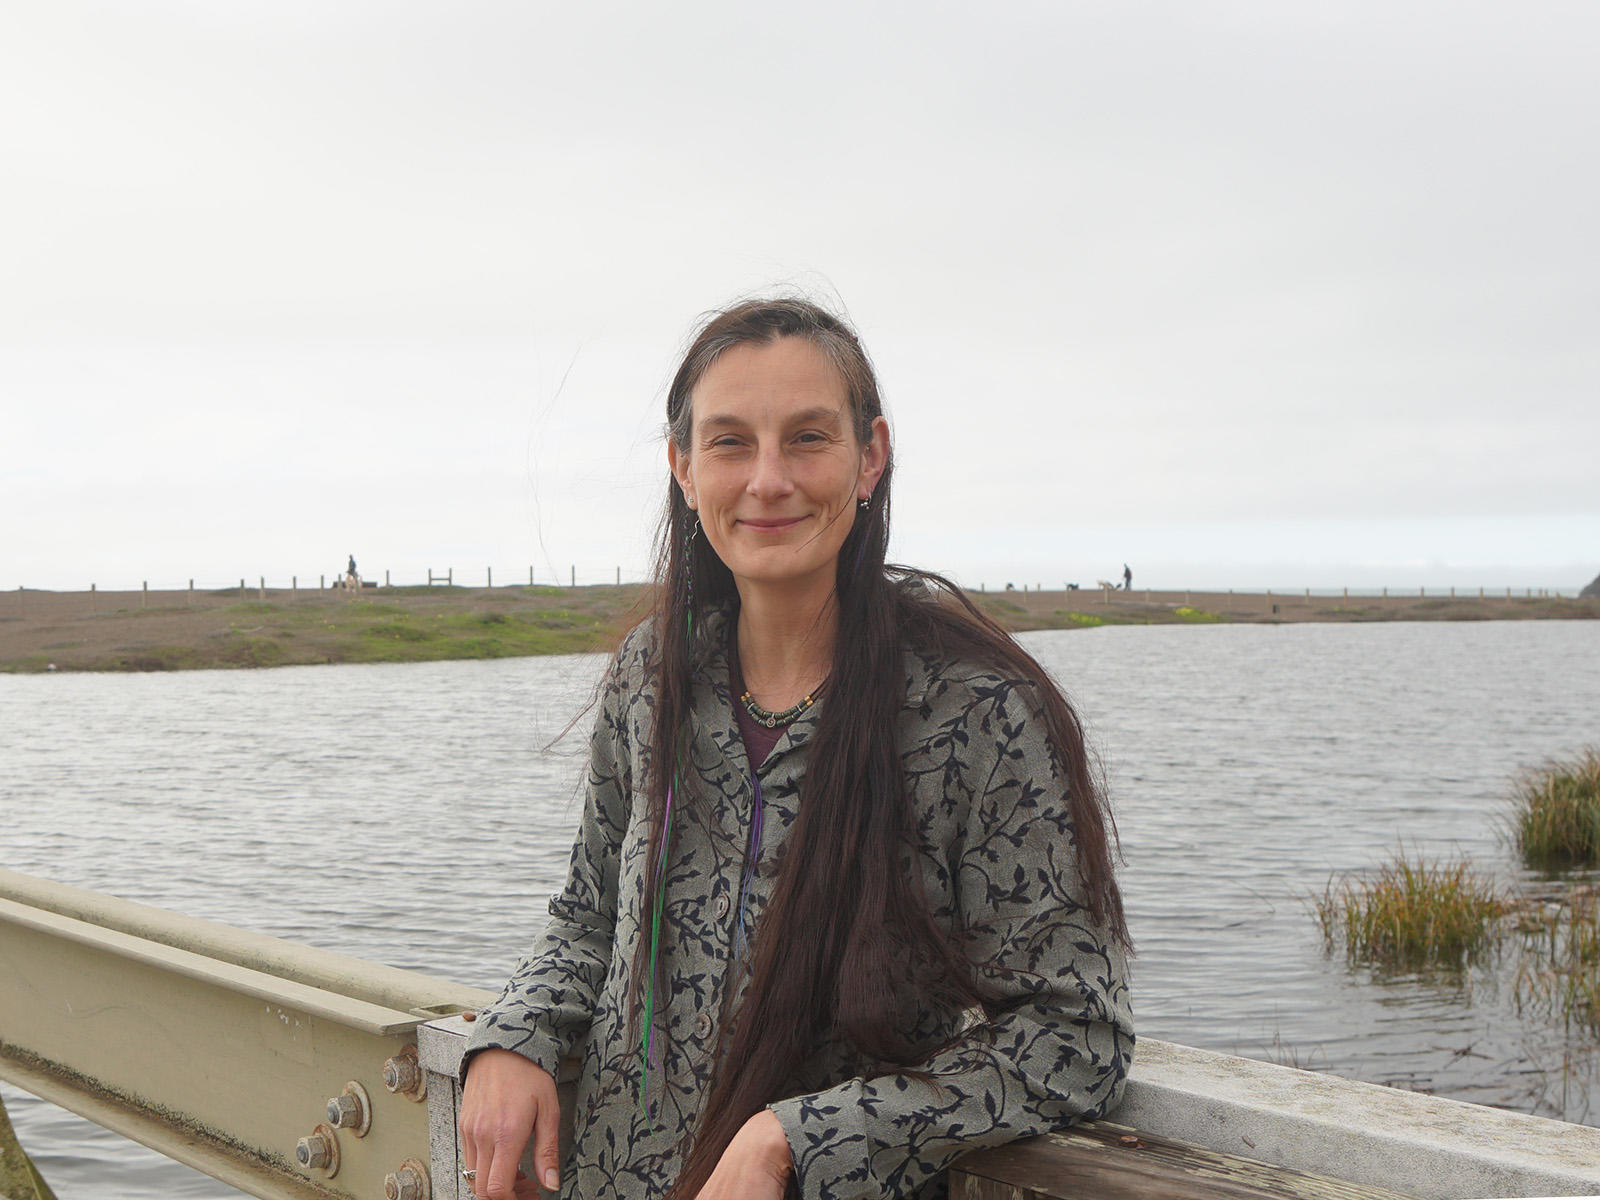 Portrait of Data manager Lizzy Edson smiling on the bridge by Rodeo Lagoon.